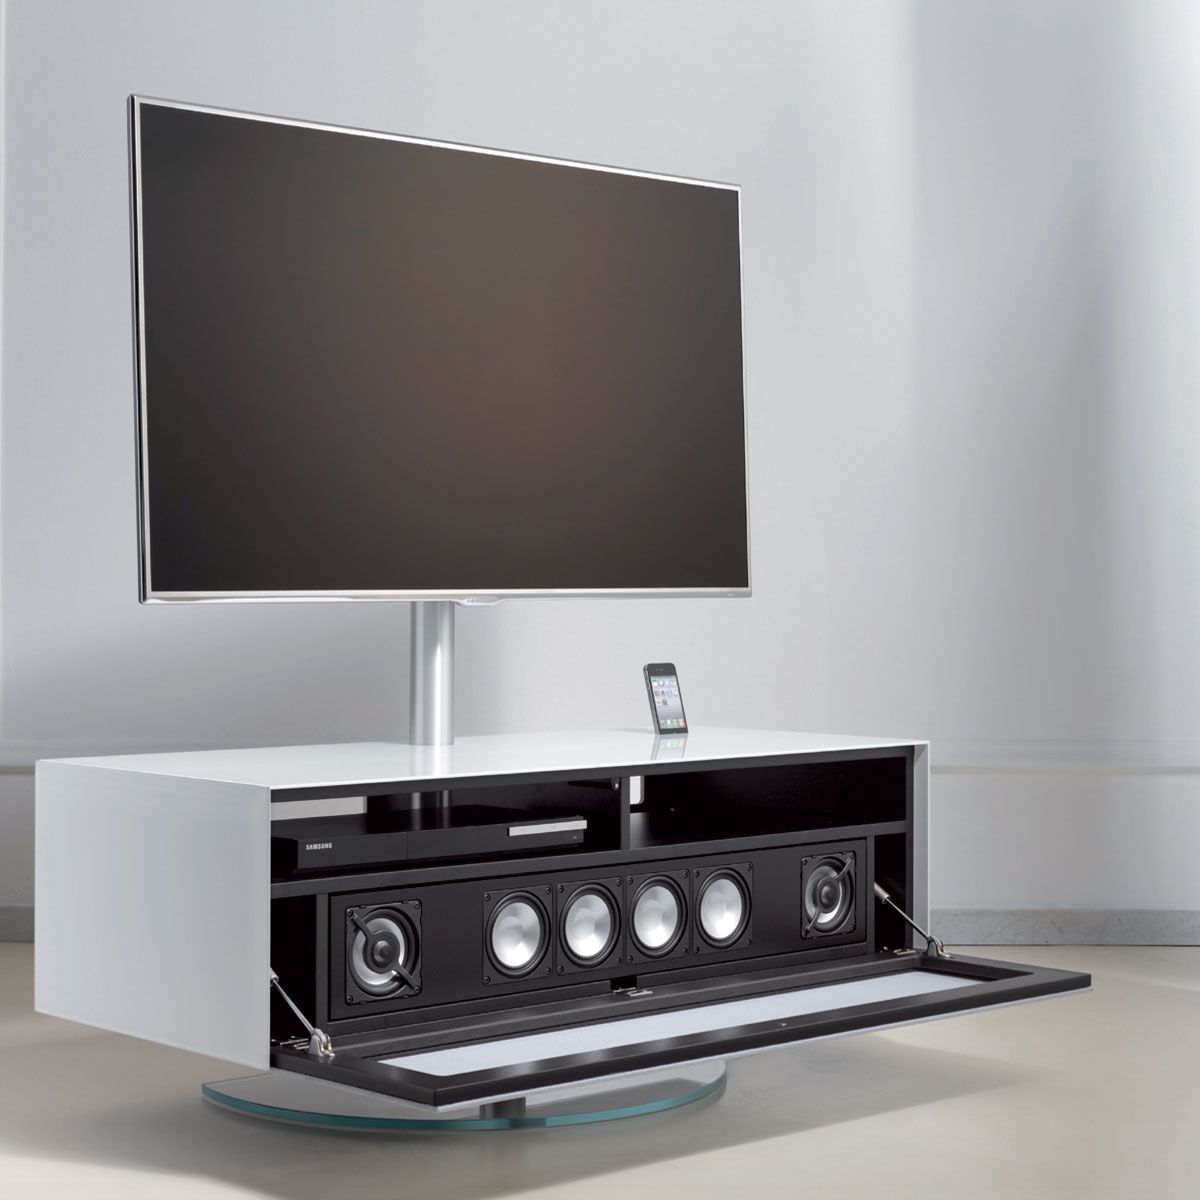 Design tv möbel lowboard  Tolle tv hifi möbel design | Deutsche Deko | Pinterest | Hifi ...